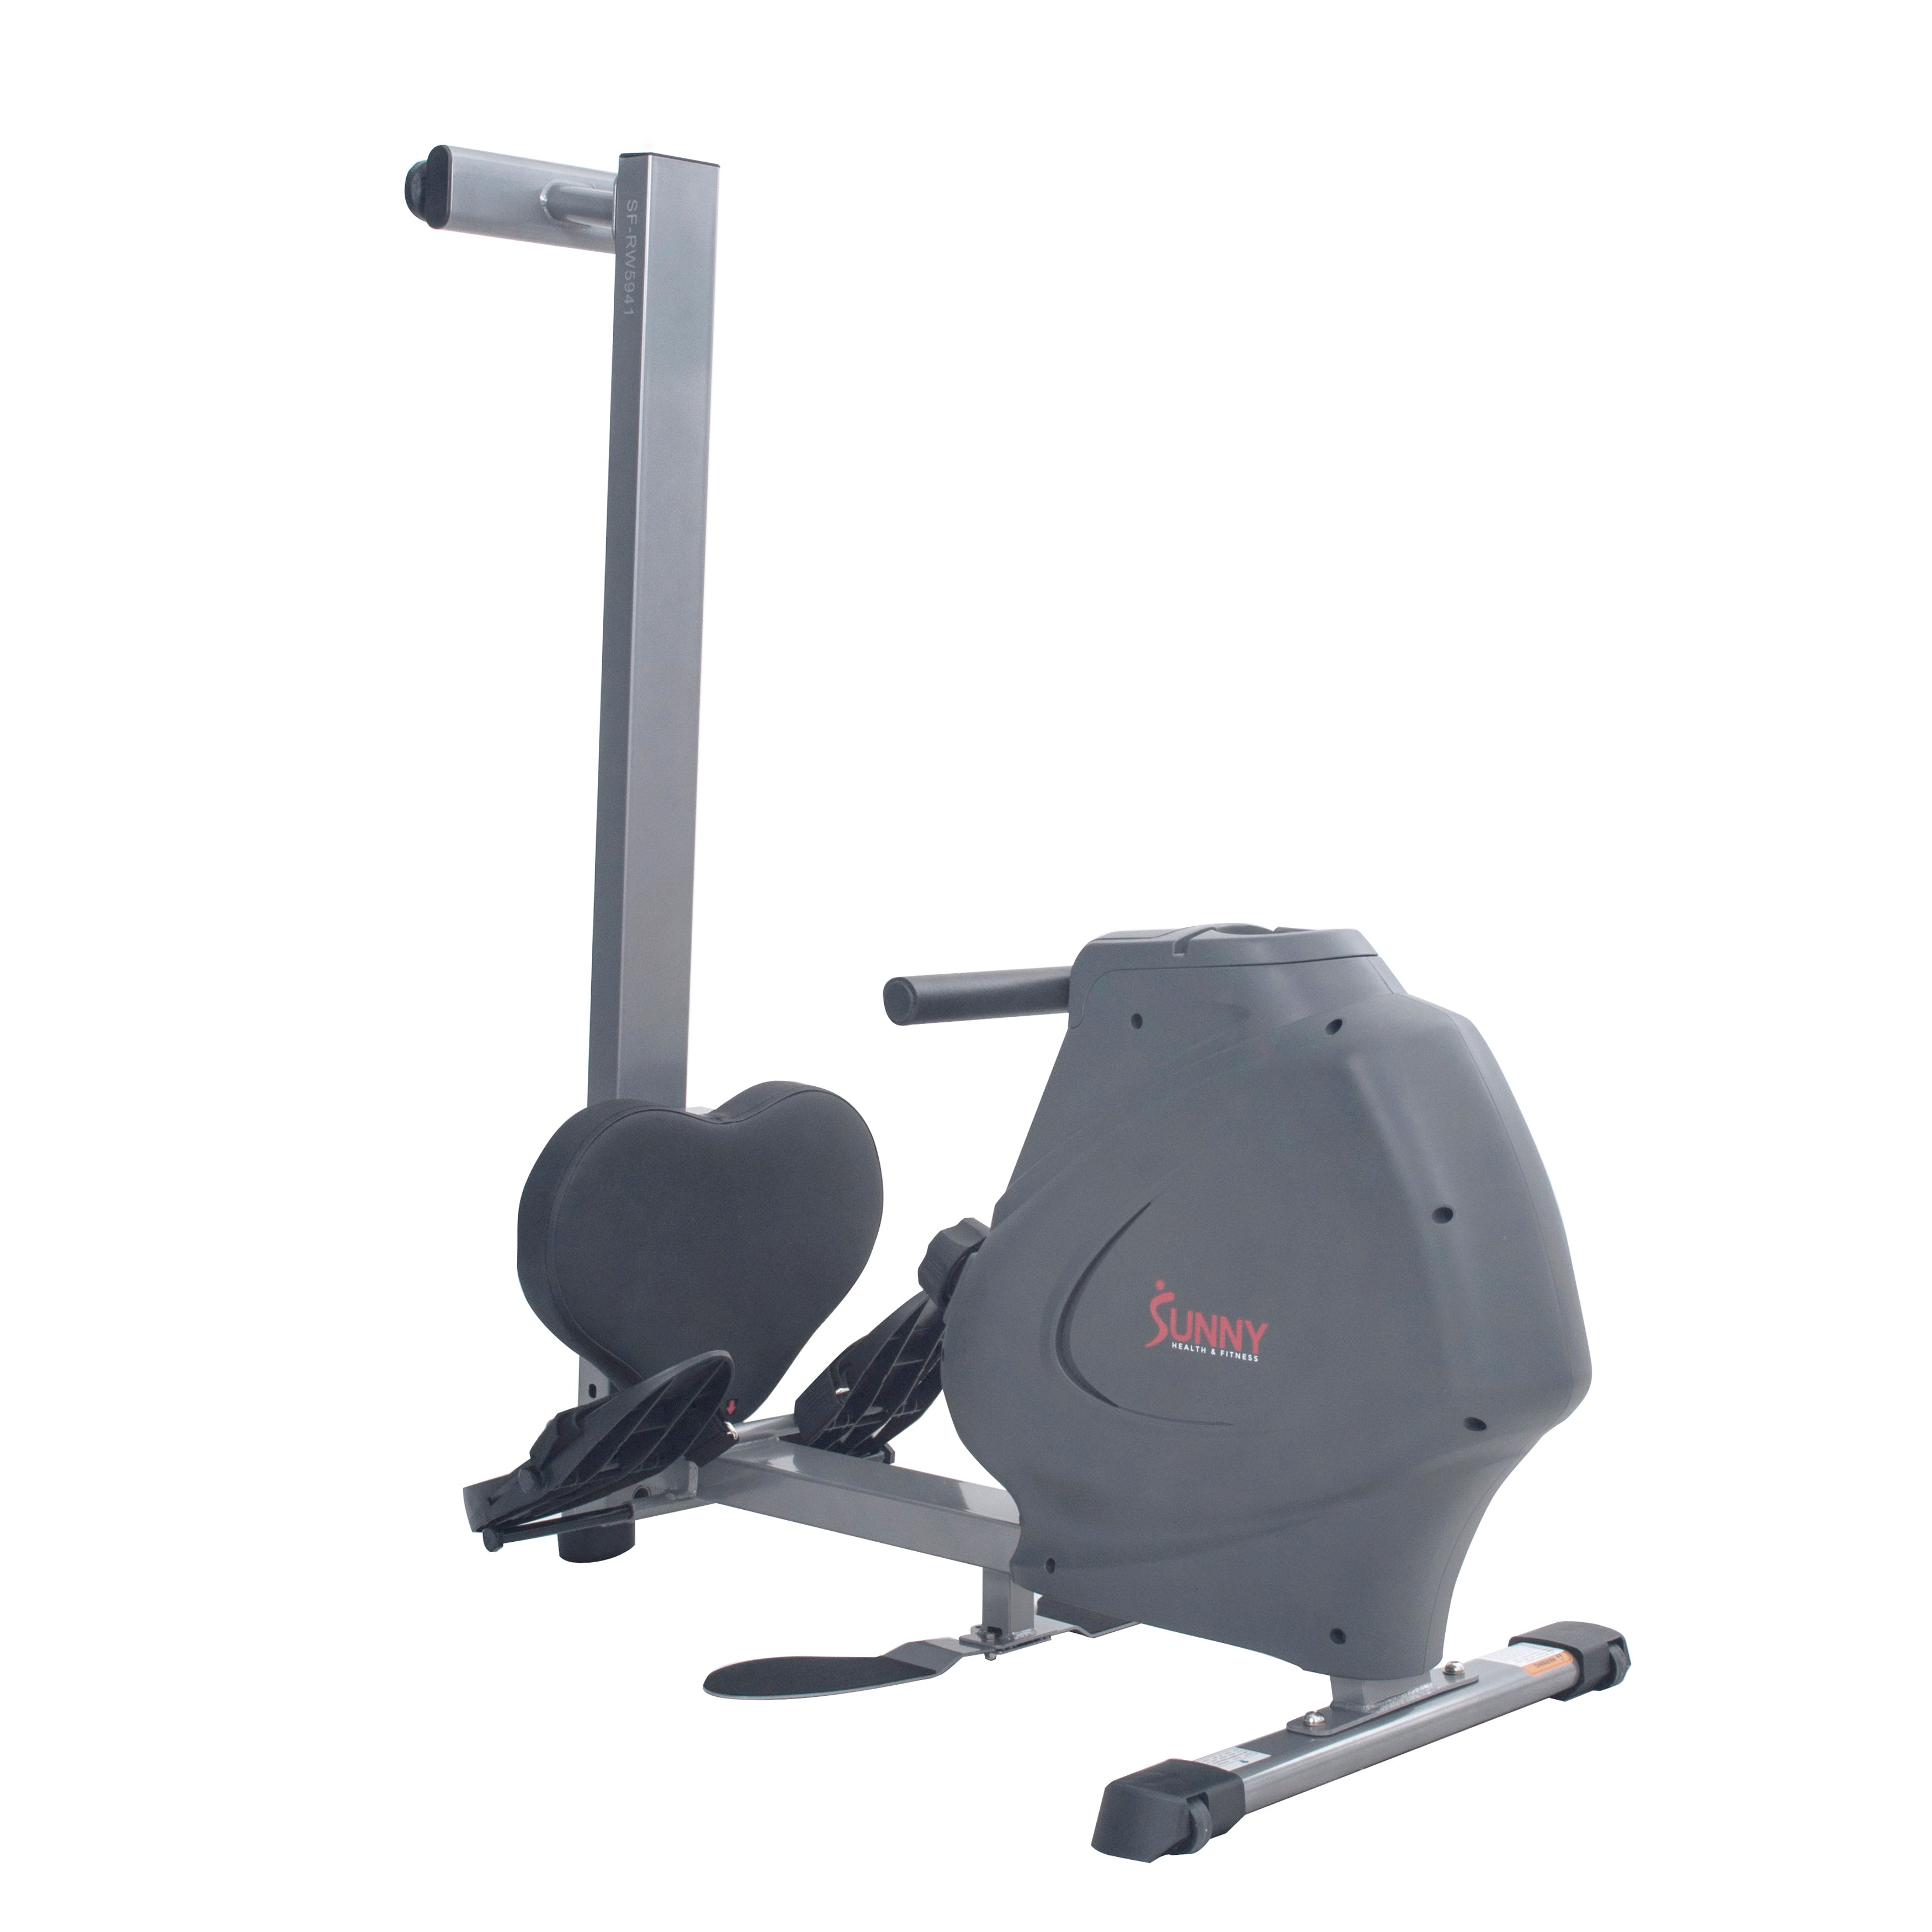 sunny-health-fitness-rowers-multifunction-spm-magnetic-rowing-machine-SF-rw5941-Product82.jpg